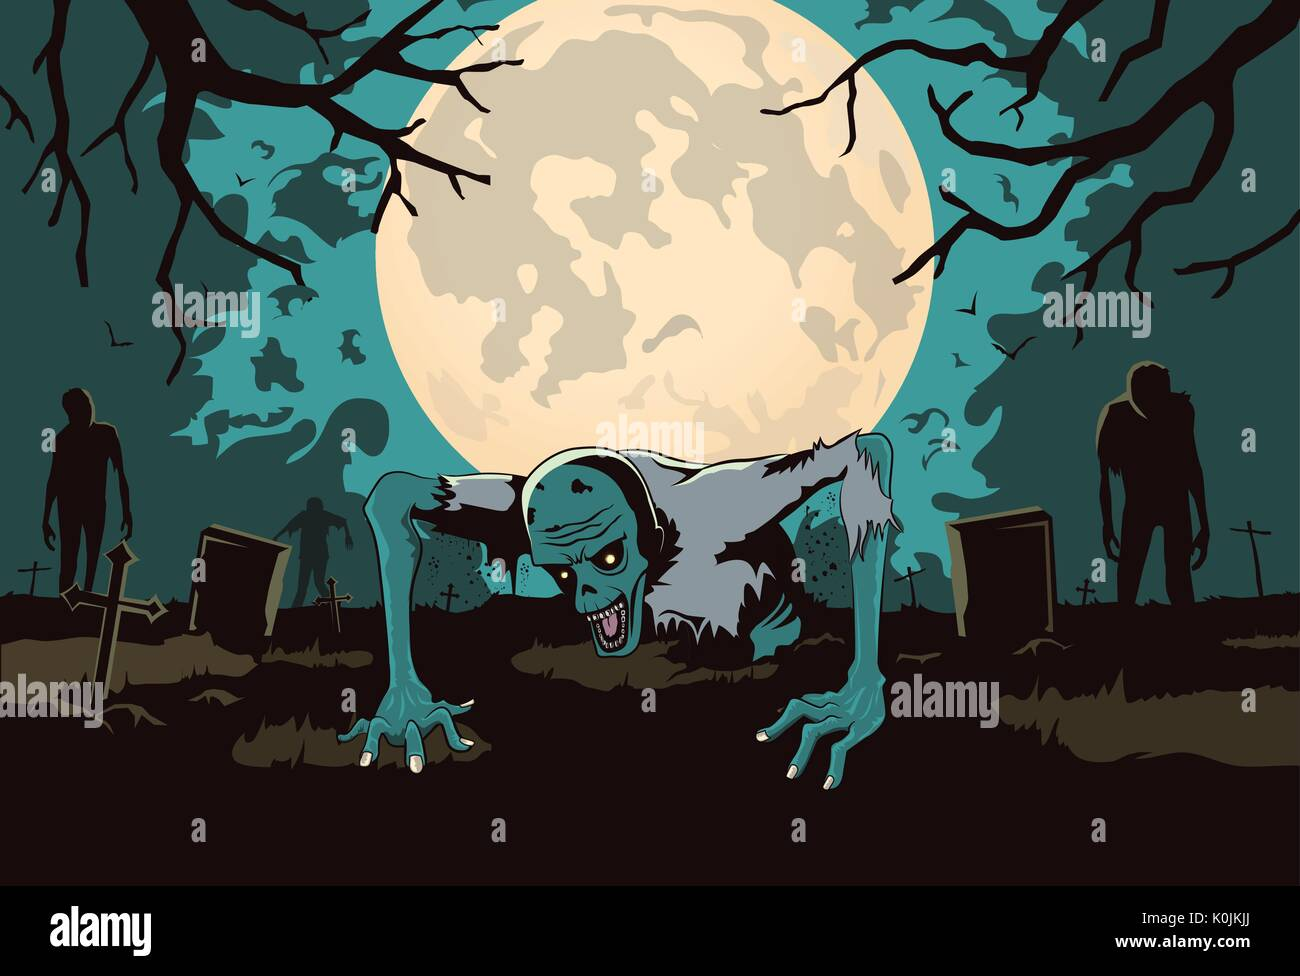 Zombie out of the grave on silhouette background in horror theme. - Stock Vector